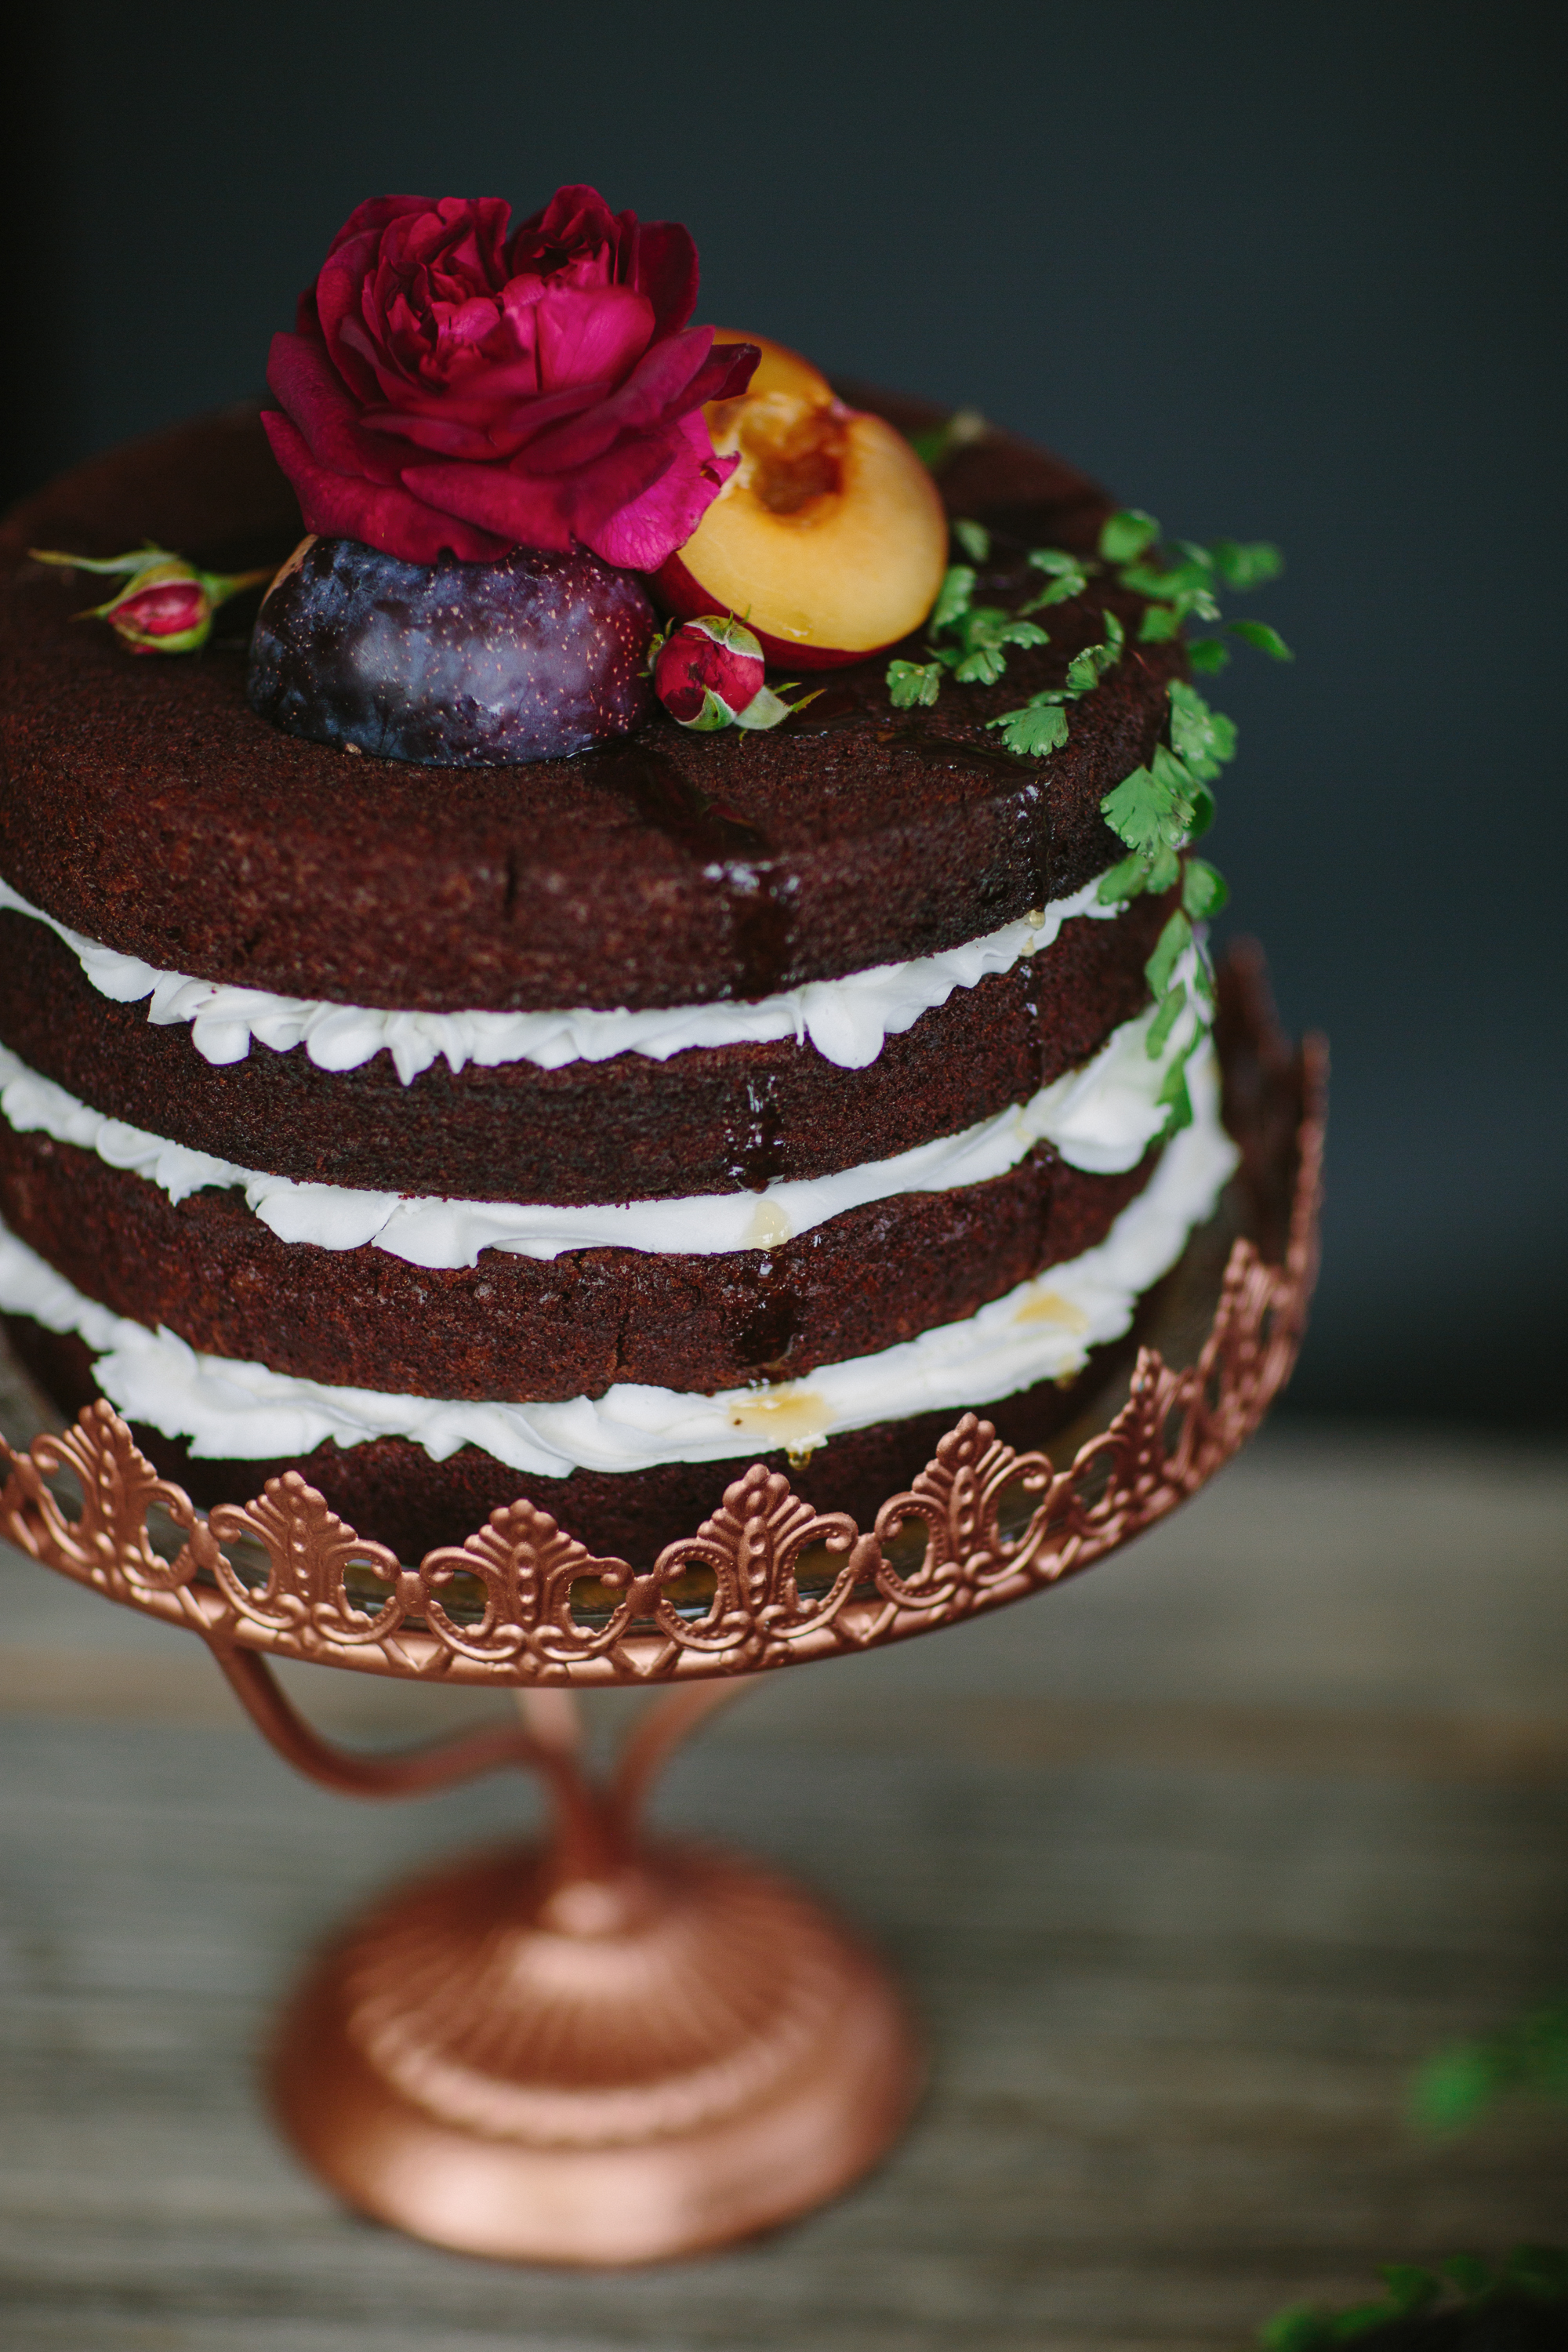 Naked Chocolate Cake Bespoke Cakery and 3 Leaf Floral